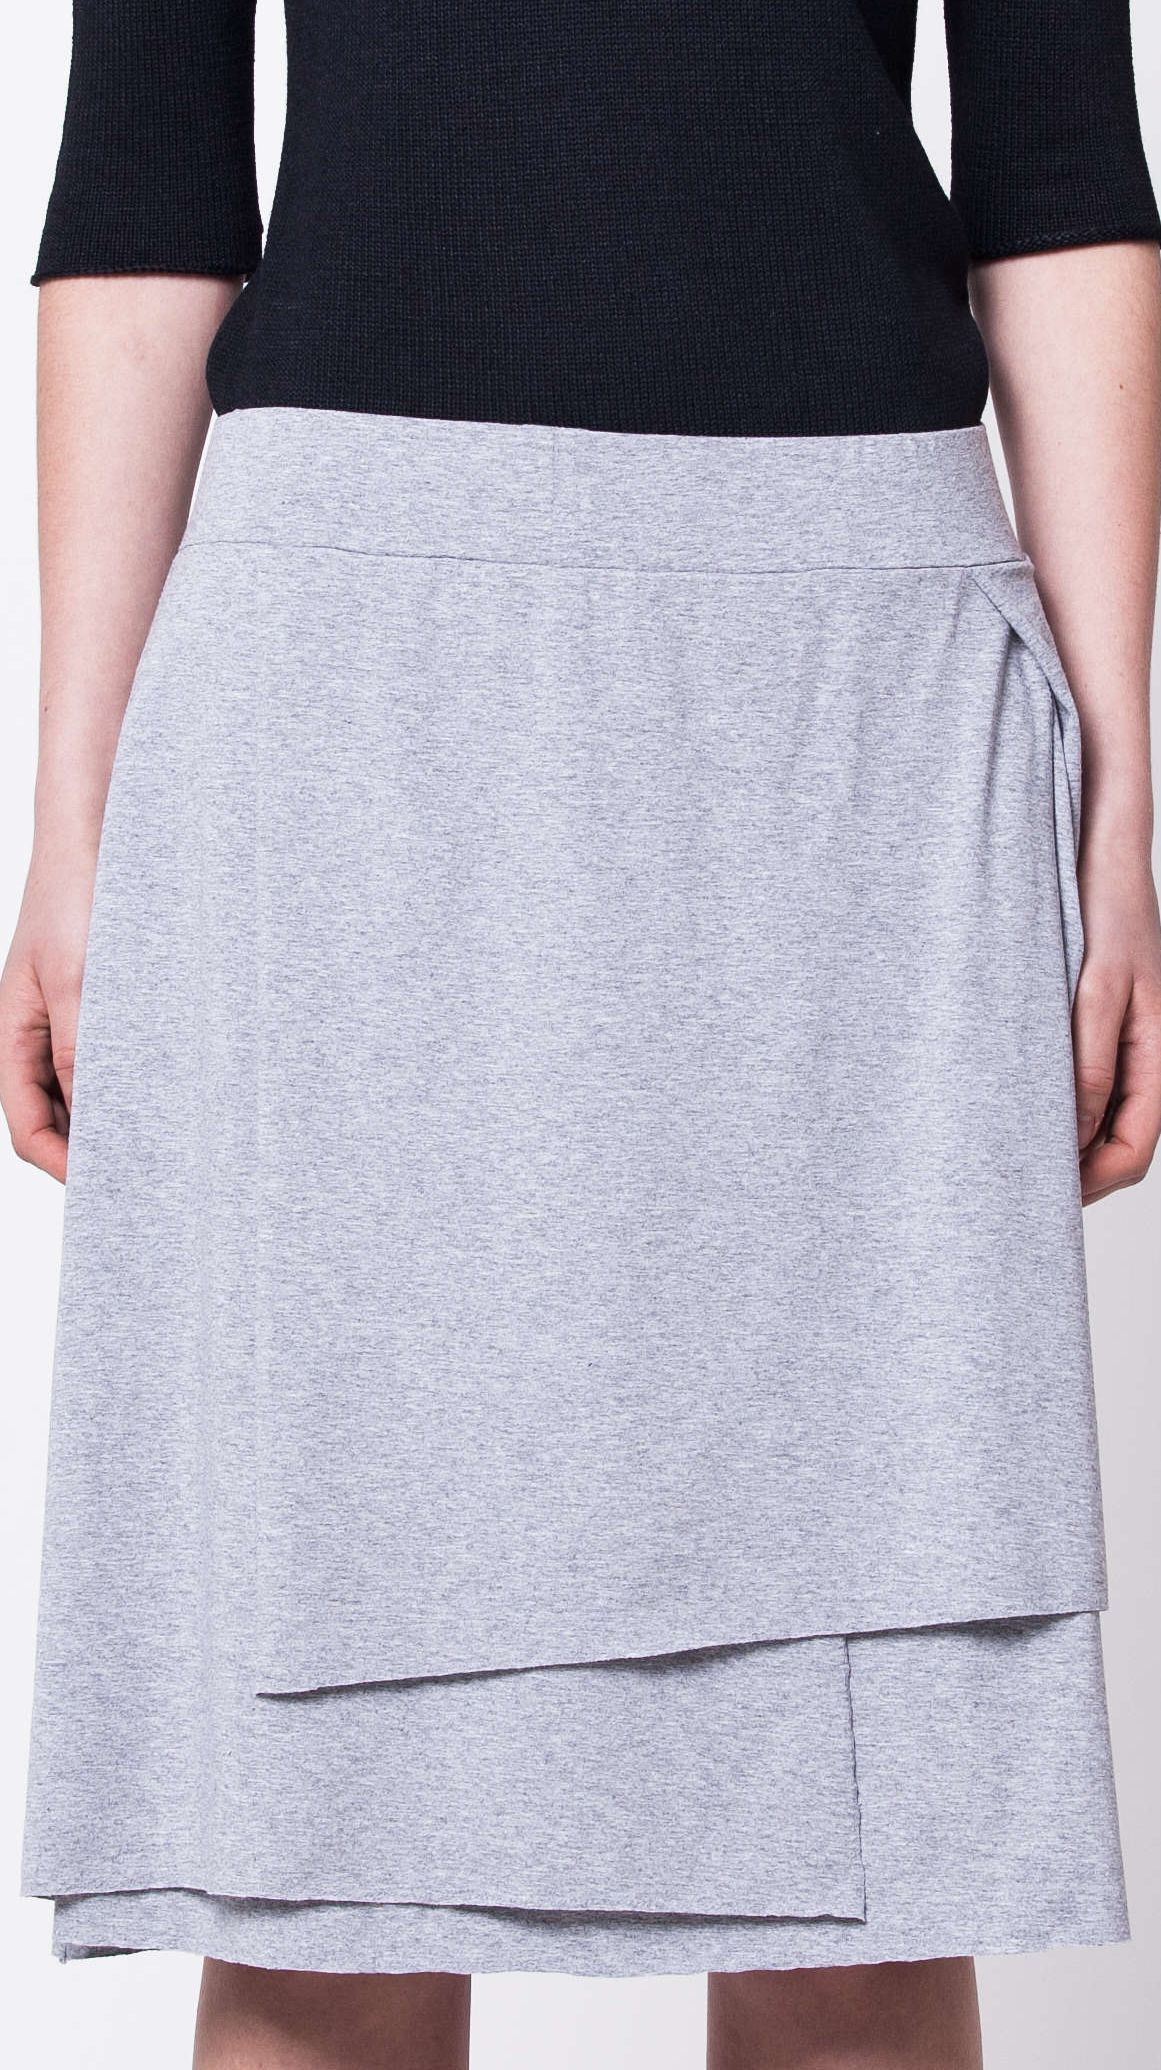 Grey layered jersey womens ladies skirt graue damen rock HANNA GREY